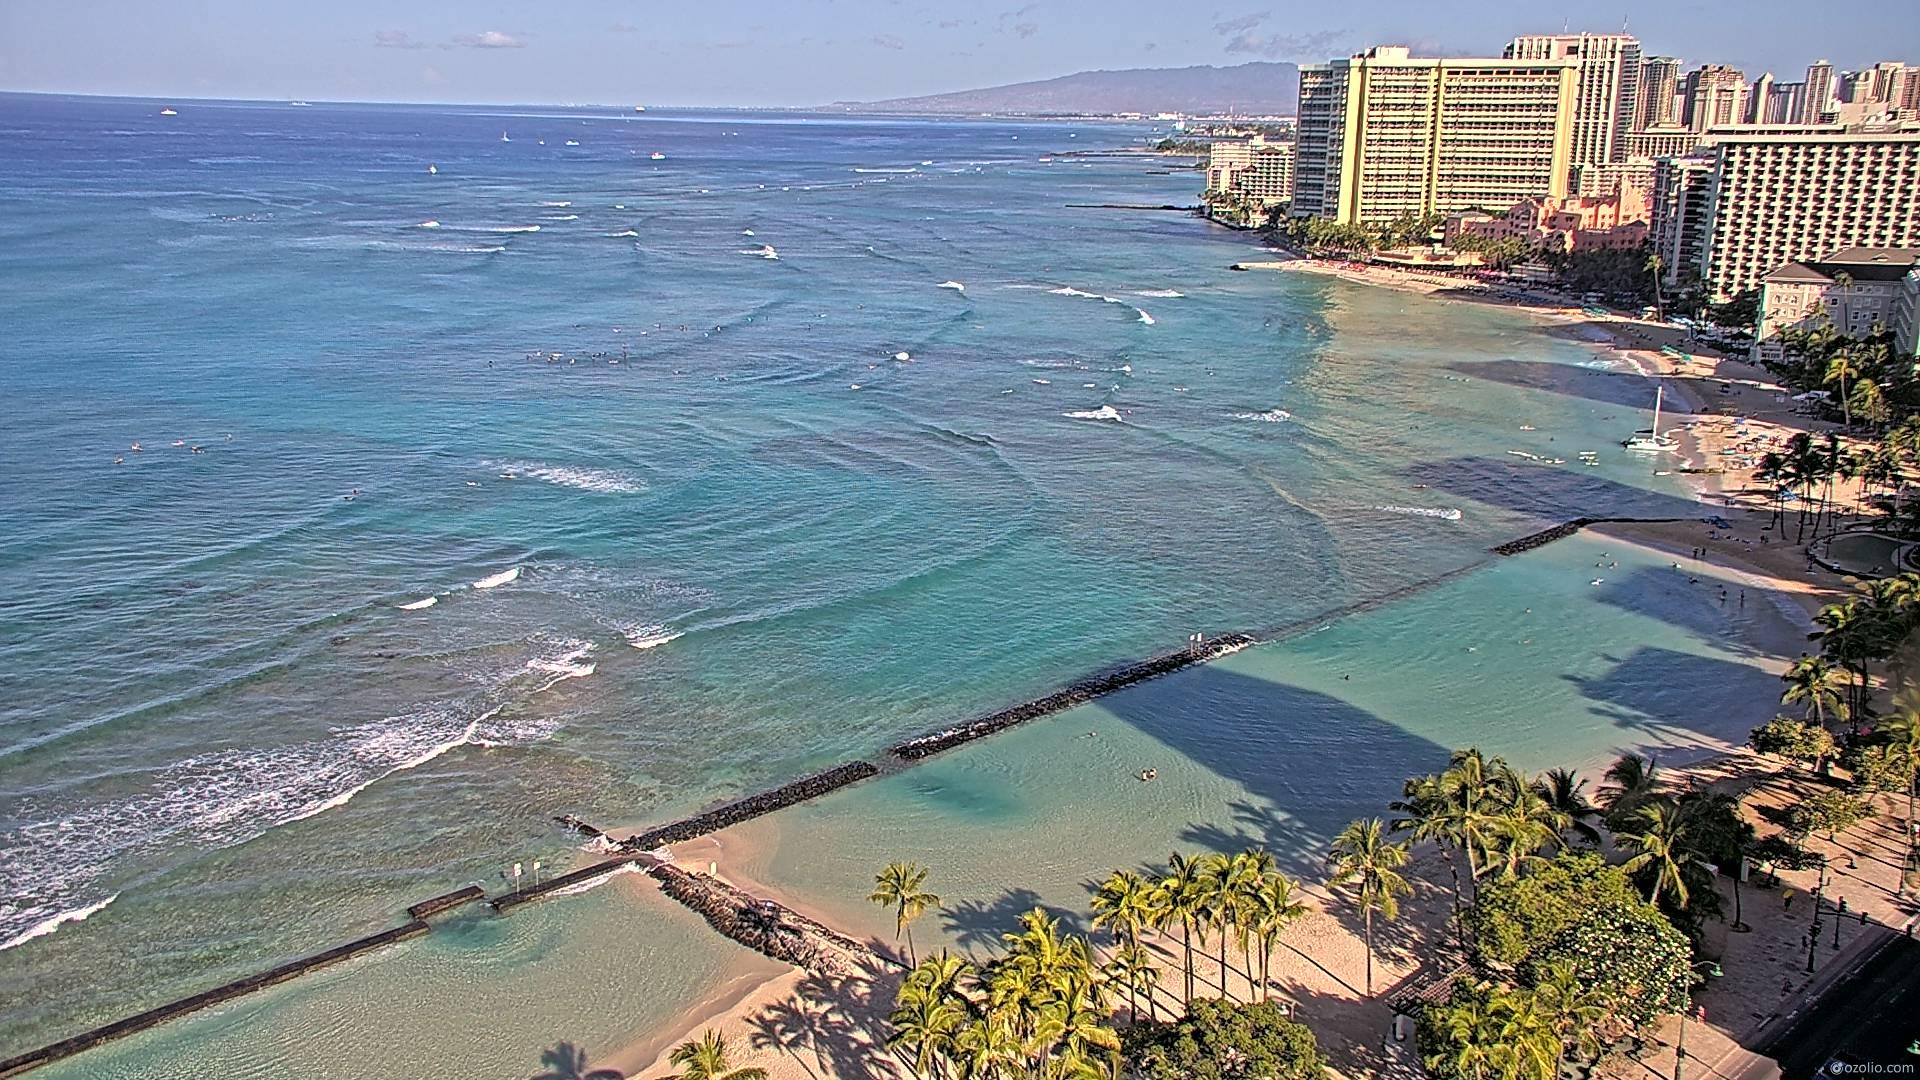 Waikiki Beach, Hawaii Fri. 08:16